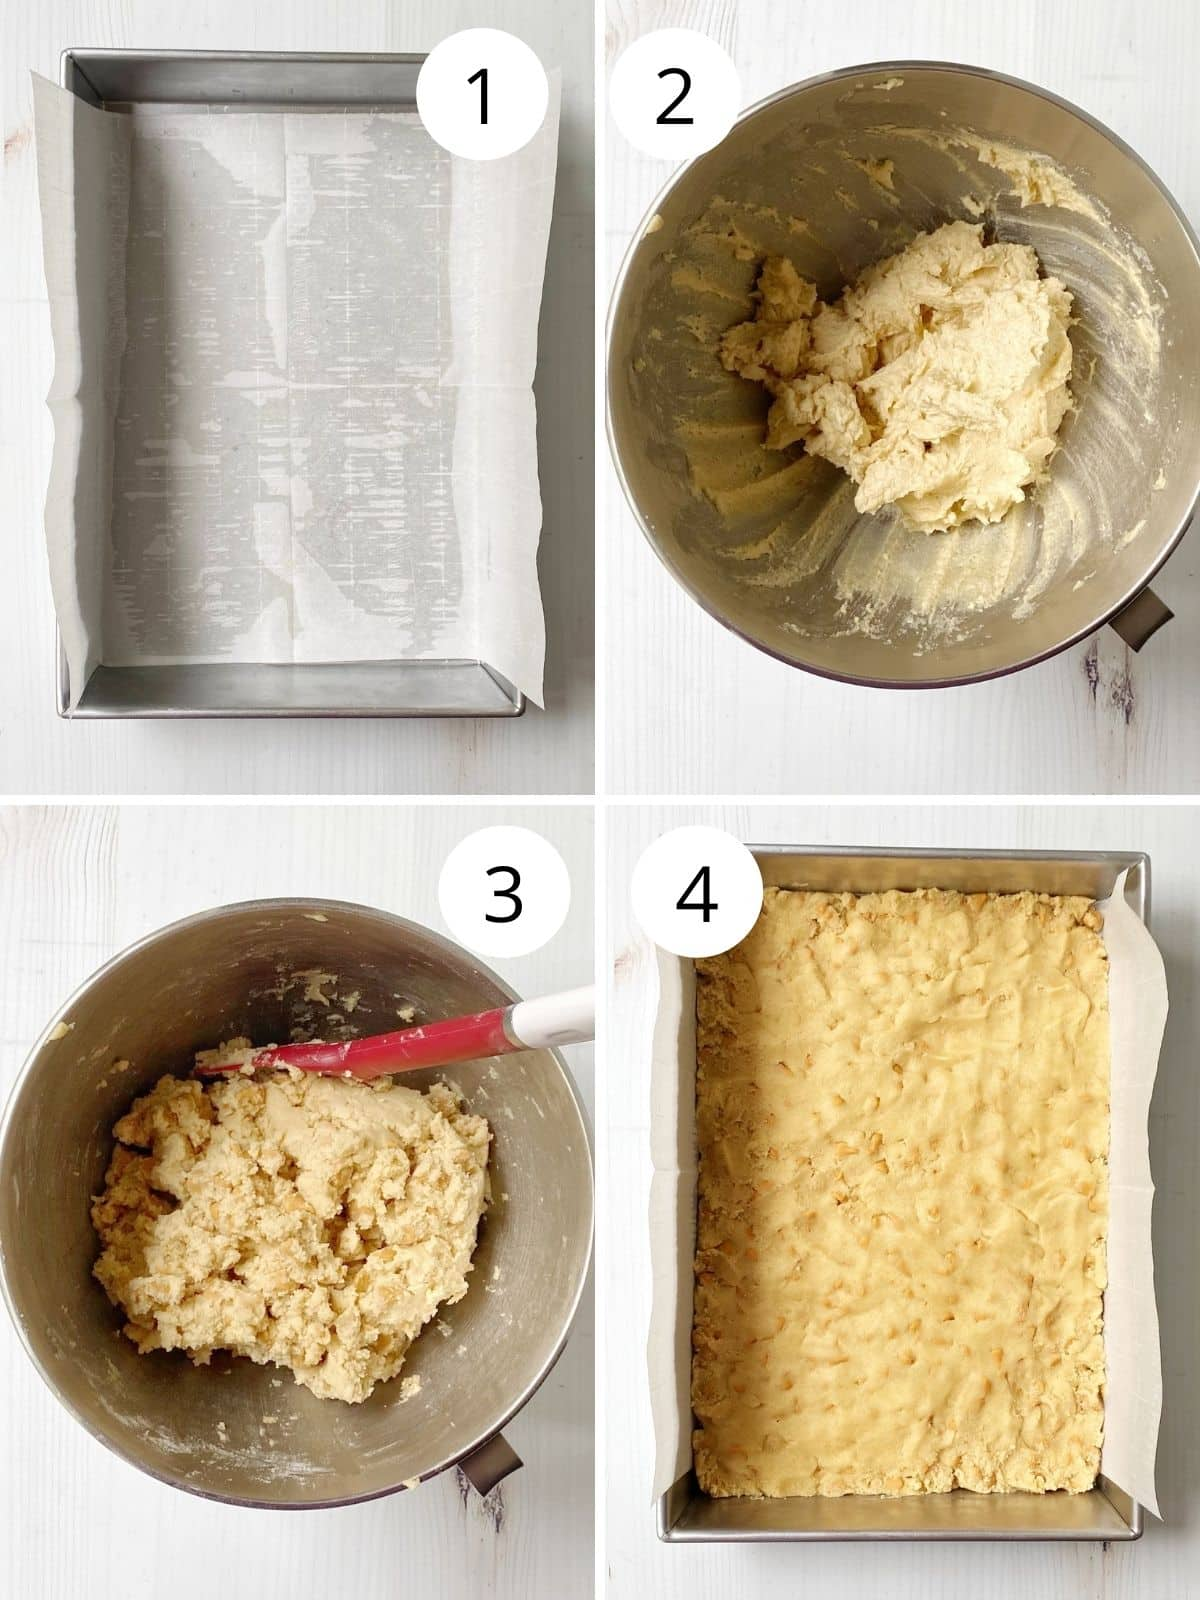 prepared cake pan, butter, sugar and eggs mixed together, prepared cookie dough, and dough pressed into pan